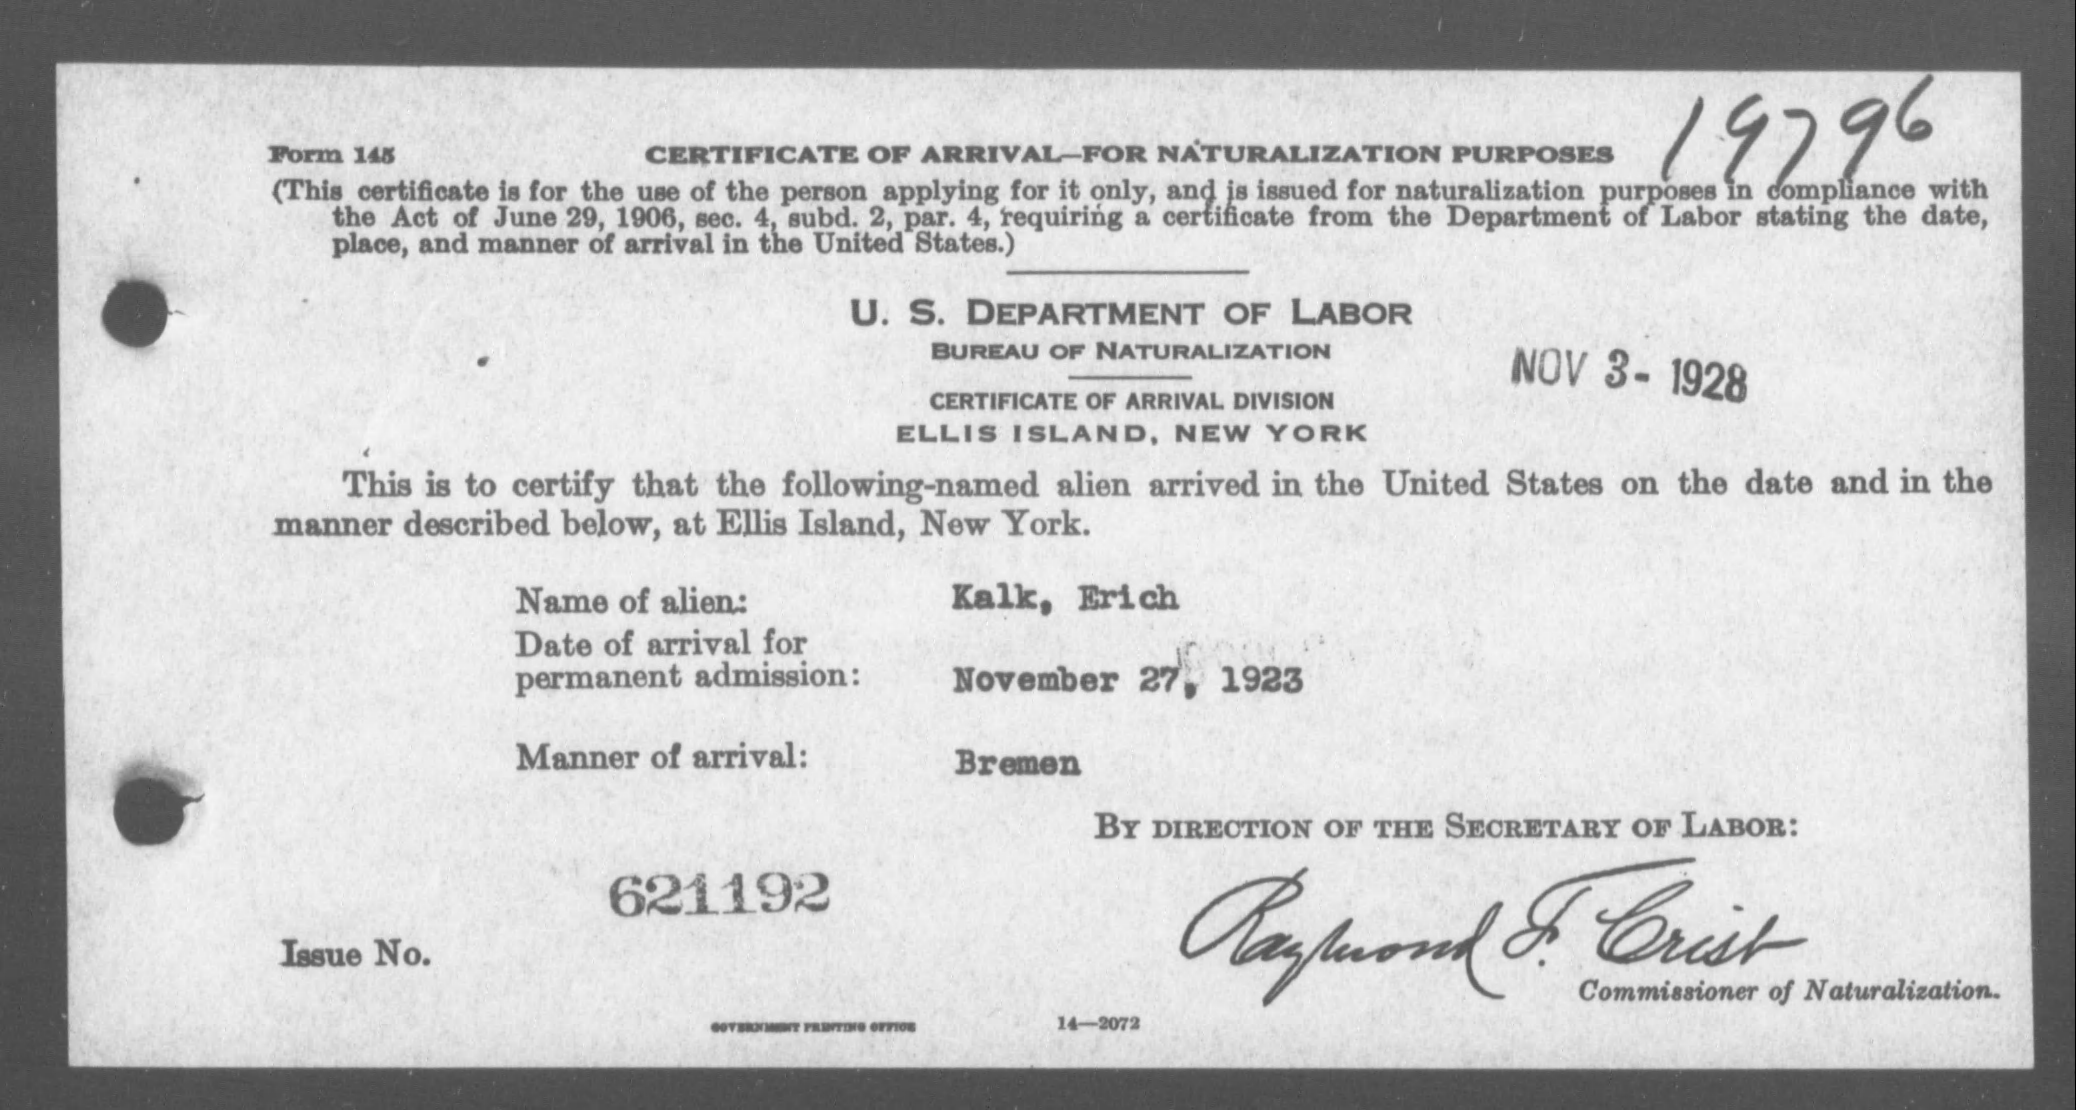 Petition for Naturalization of Kalk, Erich